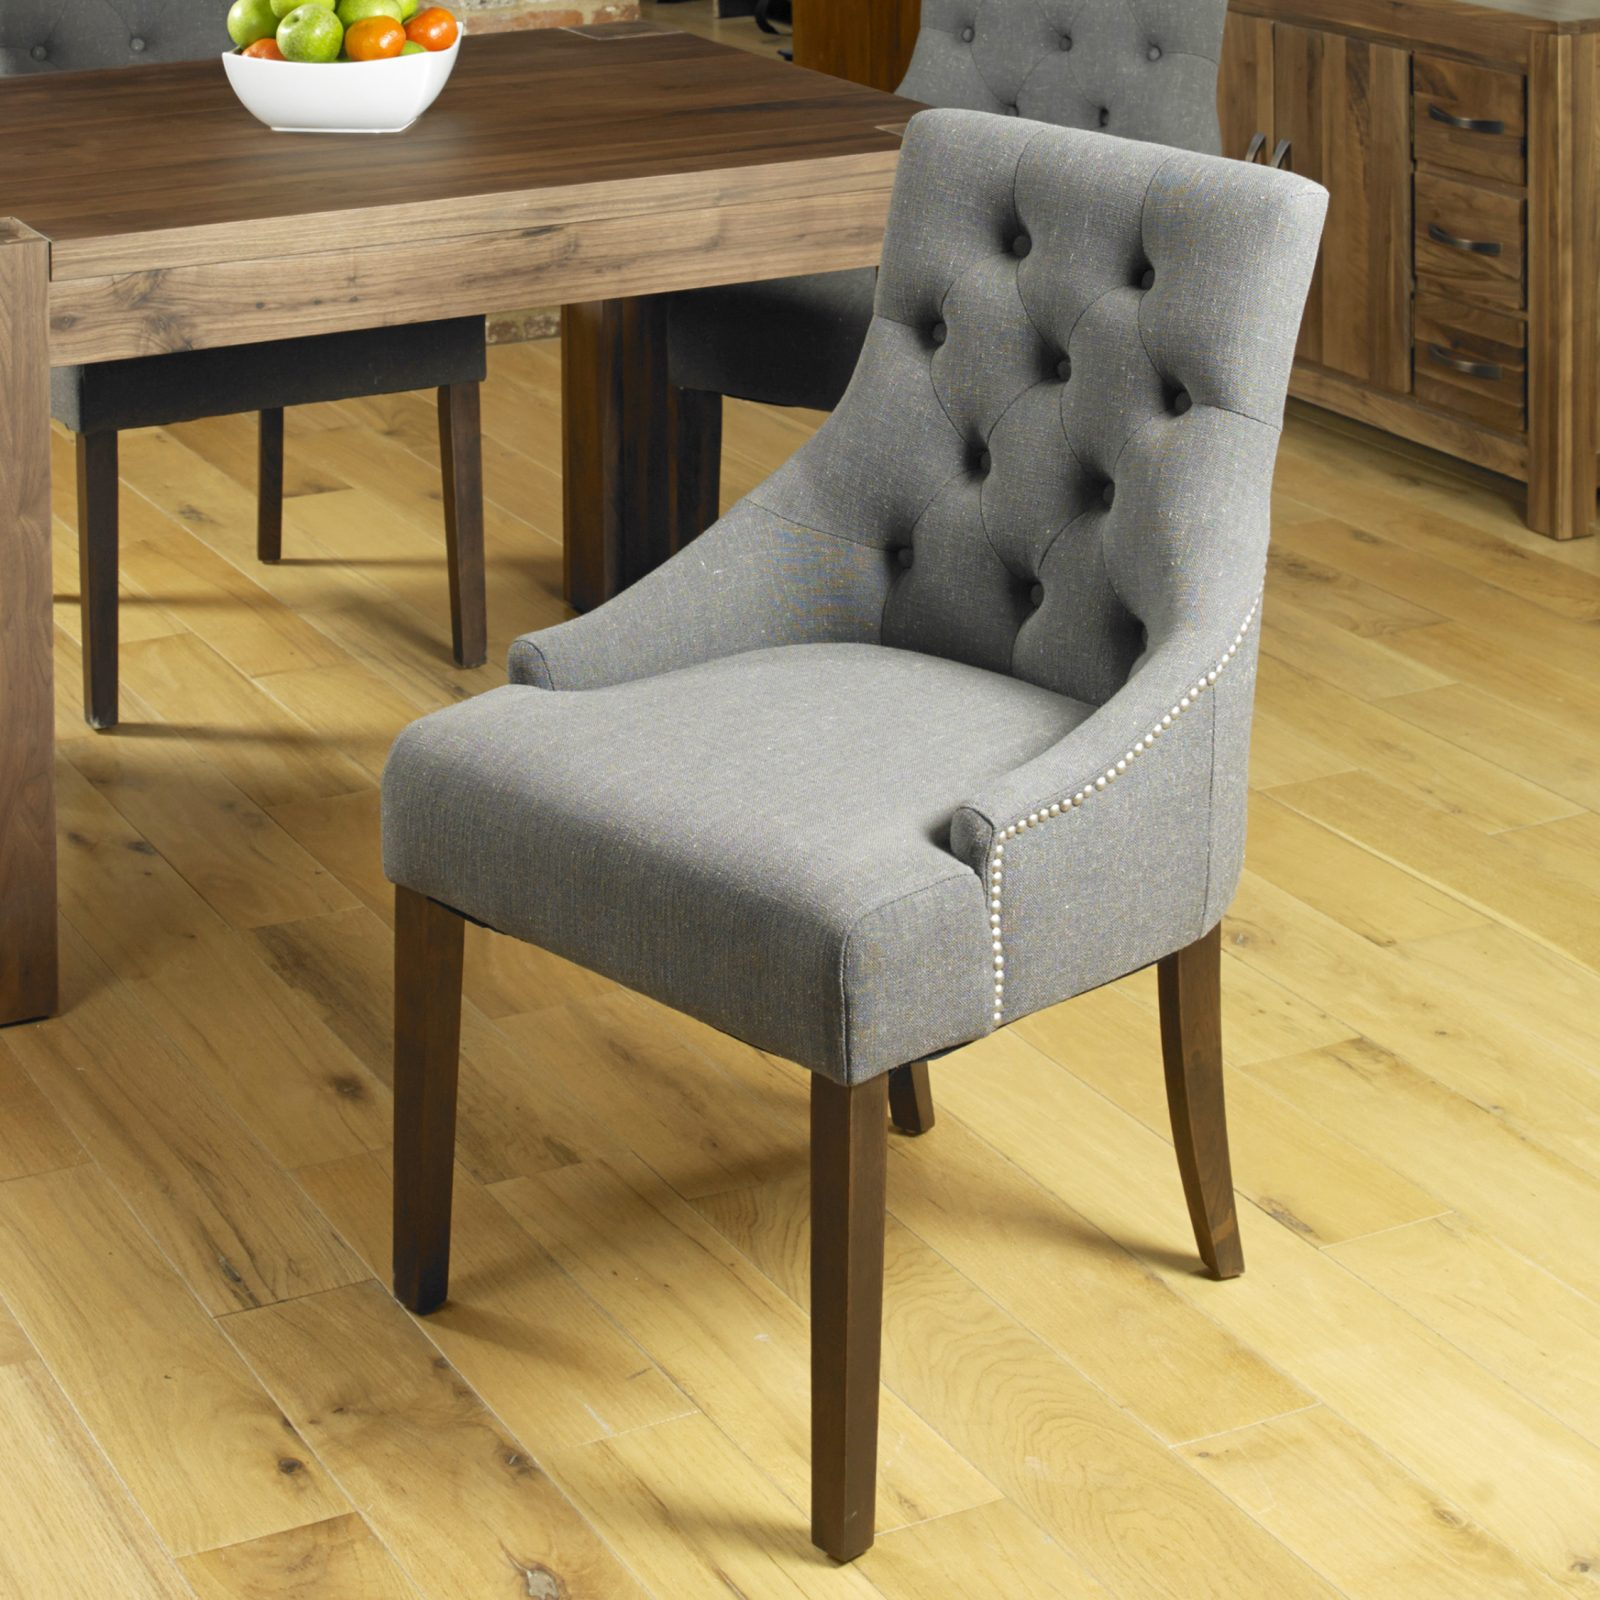 Excellent Baumhaus Shiro Walnut Accent Upholstered Dining Chair Slate Pack Of Two Ncnpc Chair Design For Home Ncnpcorg